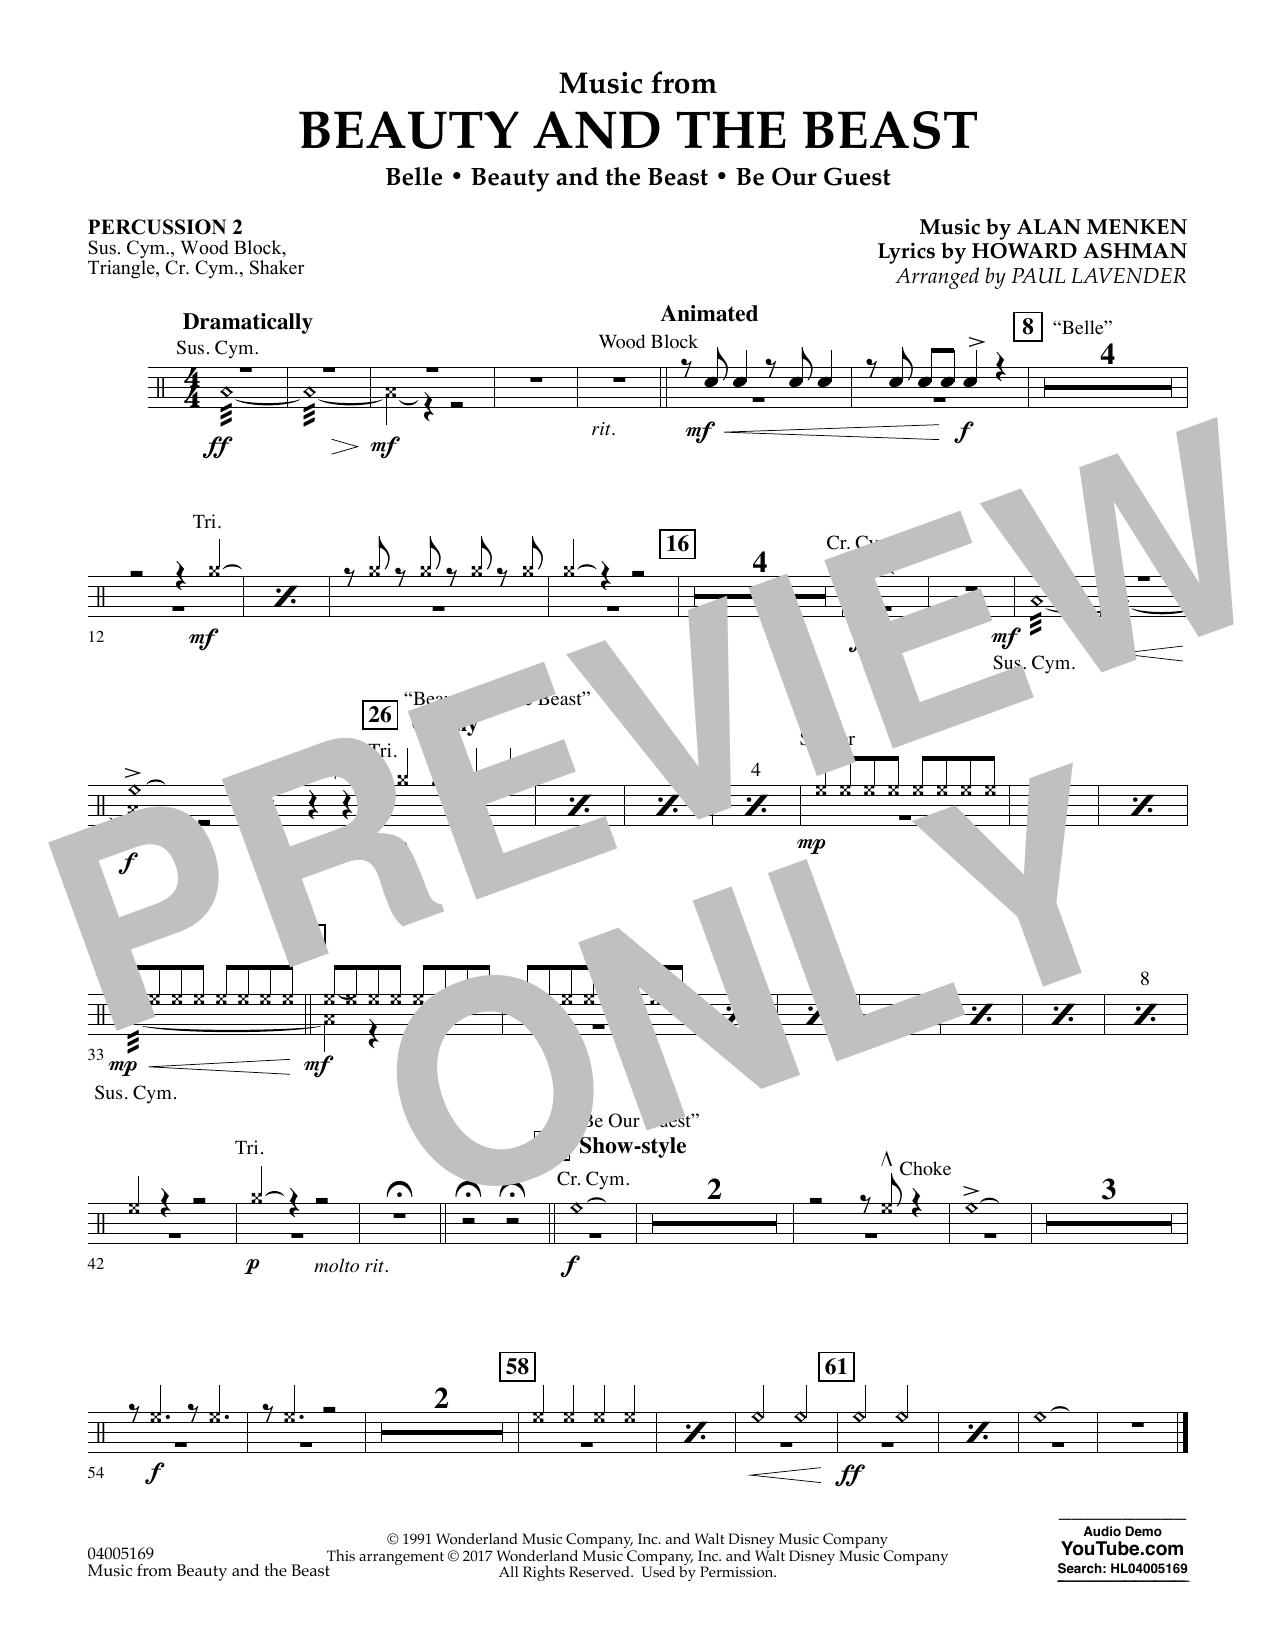 Music from Beauty and the Beast - Percussion 2 (Flex-Band)